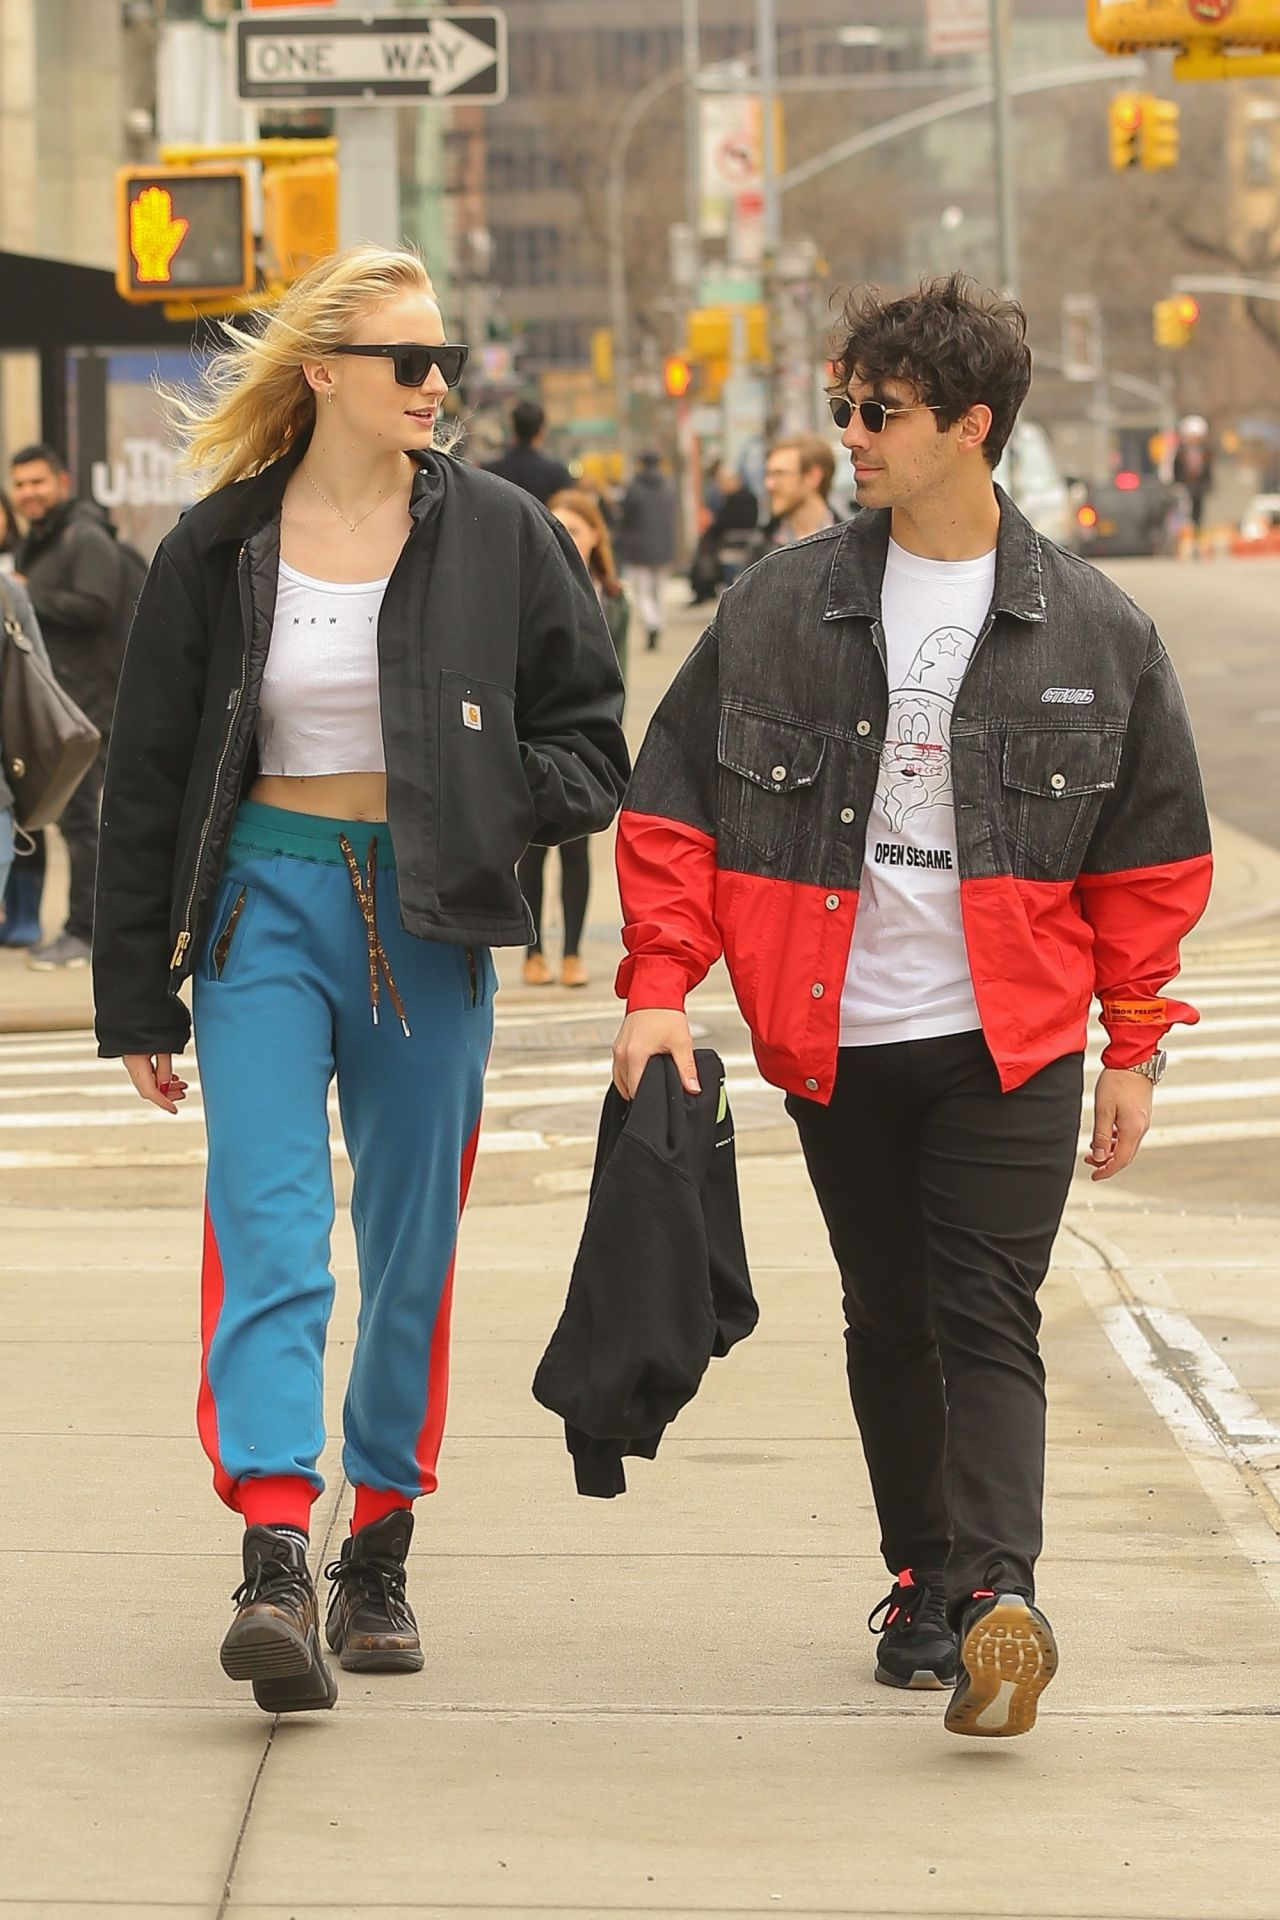 Sophie Turner And Joe Jonas Out In Nyc 03 15 2019